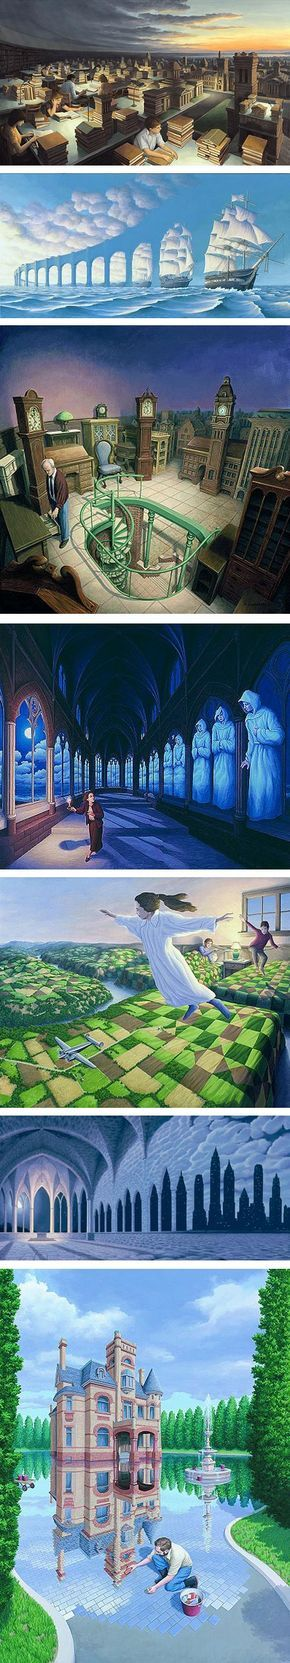 Surrealist Rob Gonsalves, Canadian artist. - I would love to have some of these as art in my home